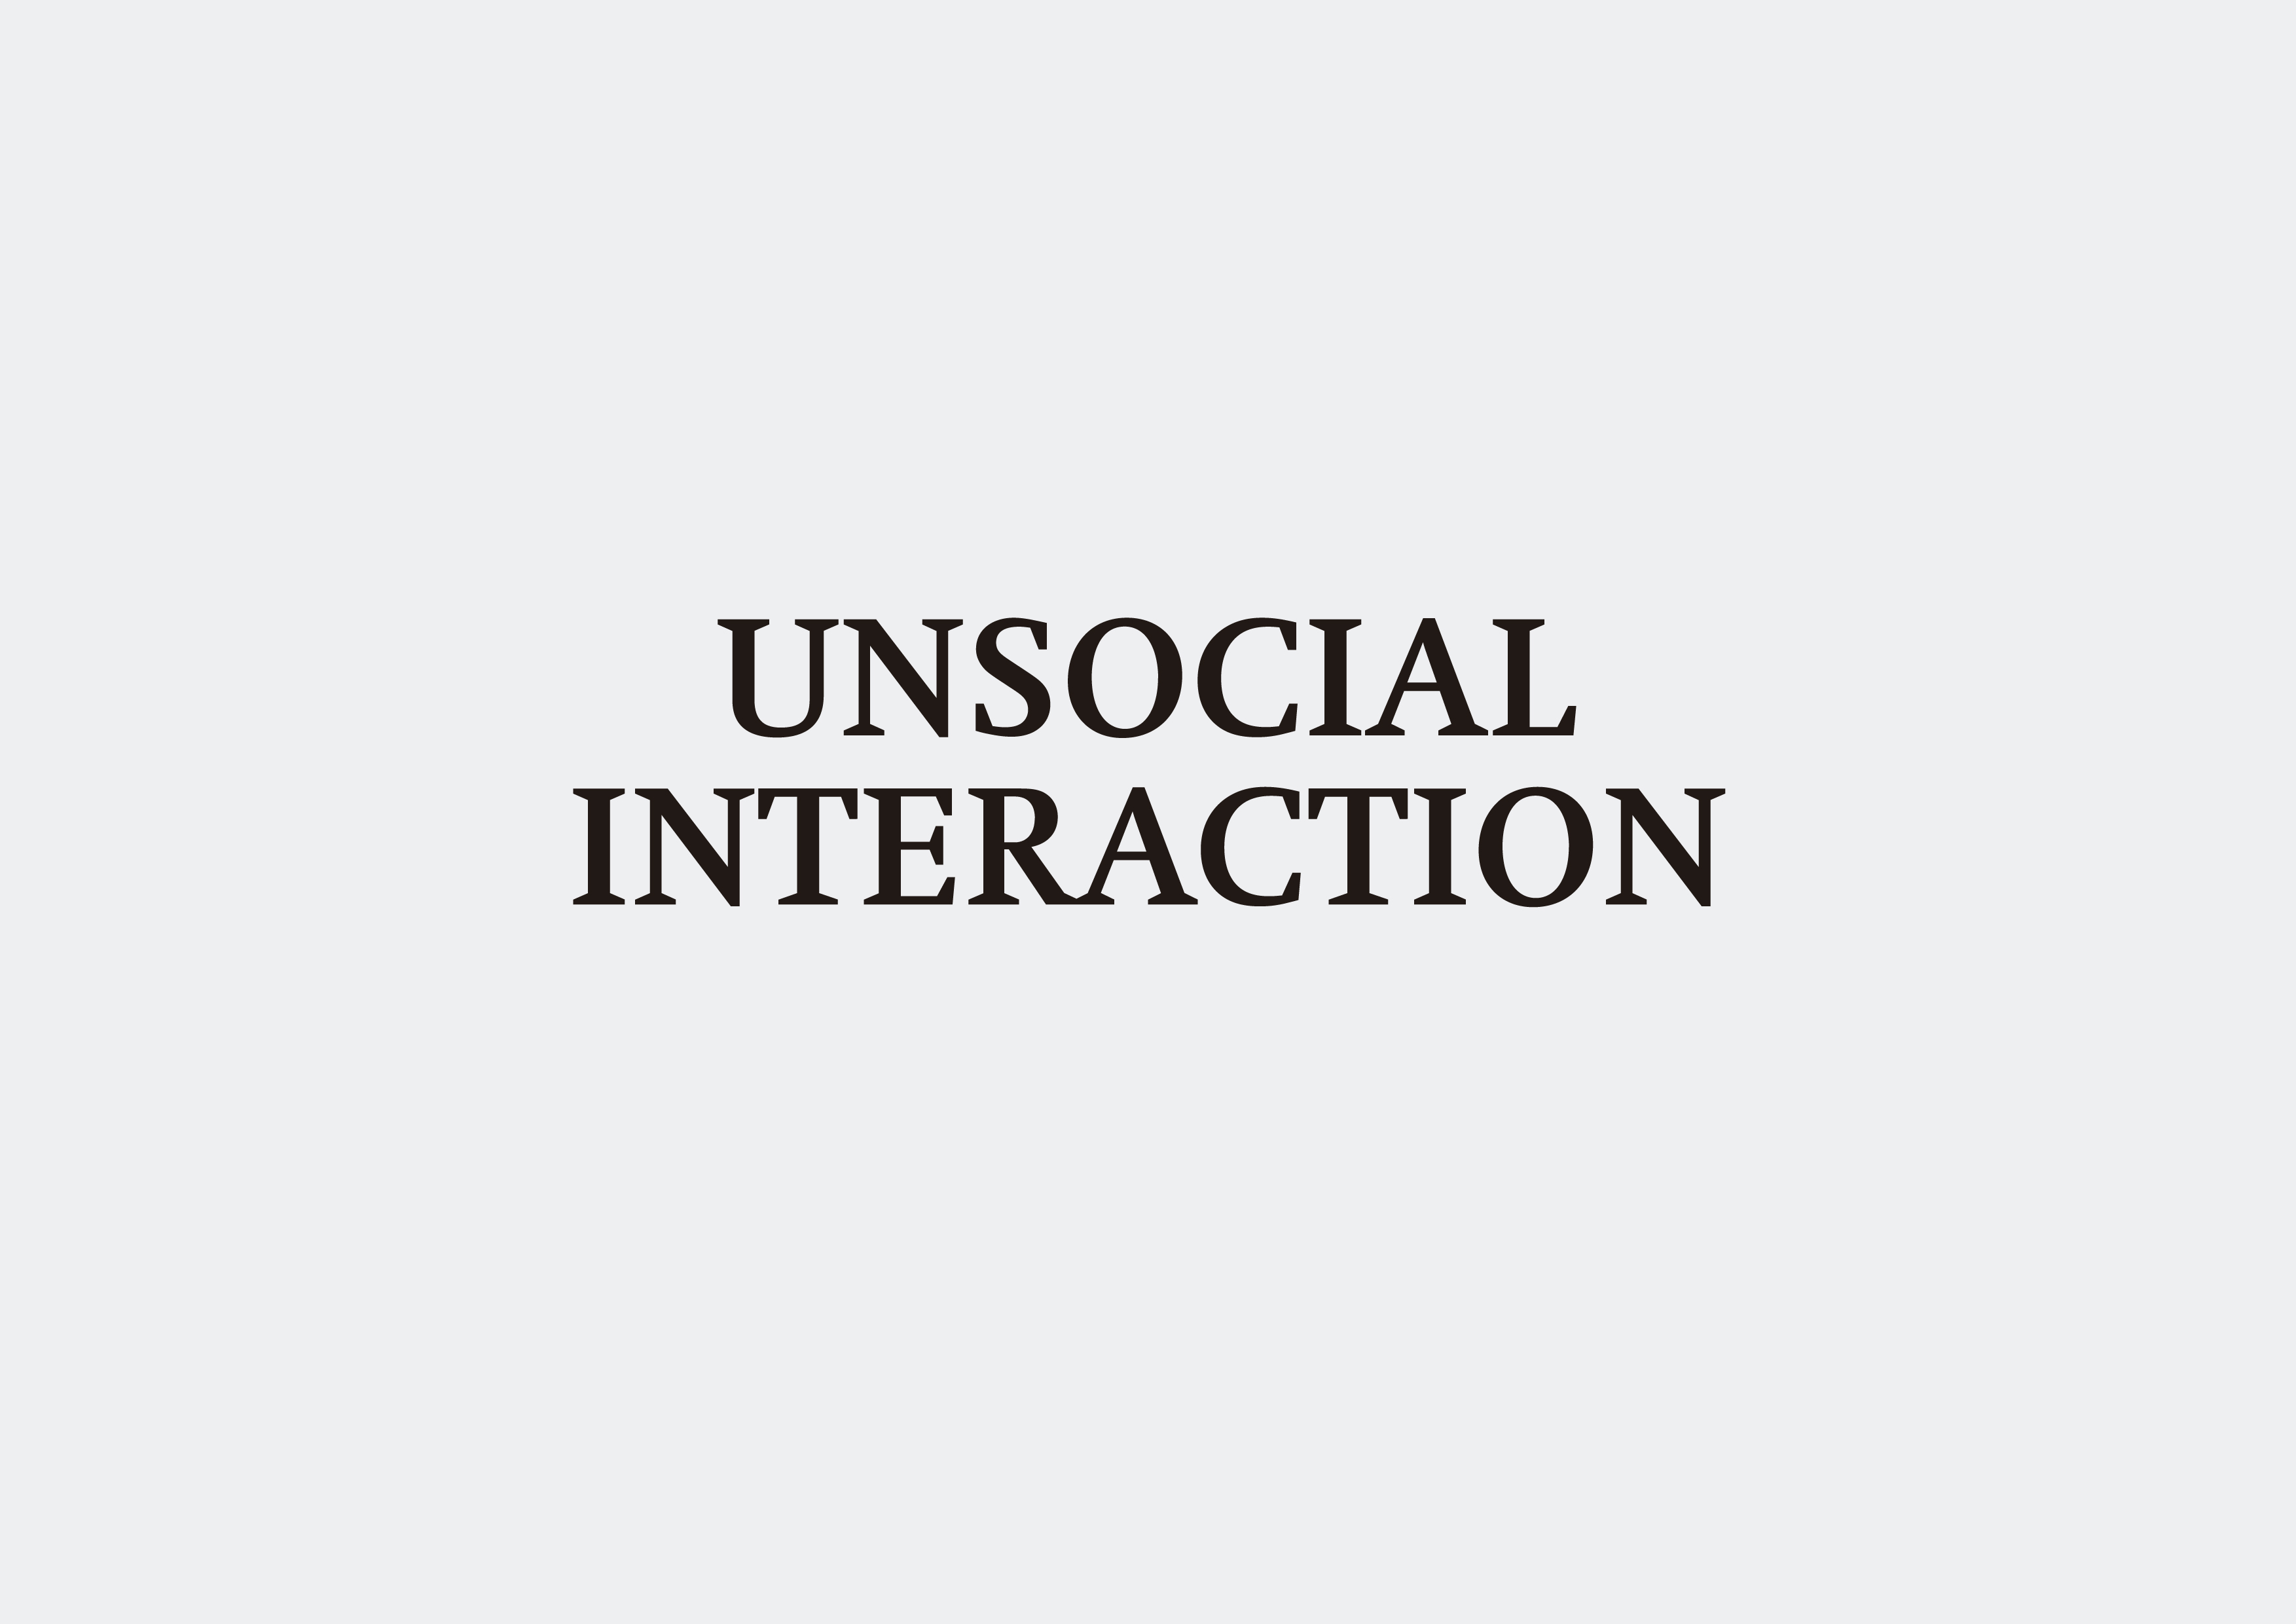 Unsocial Interaction